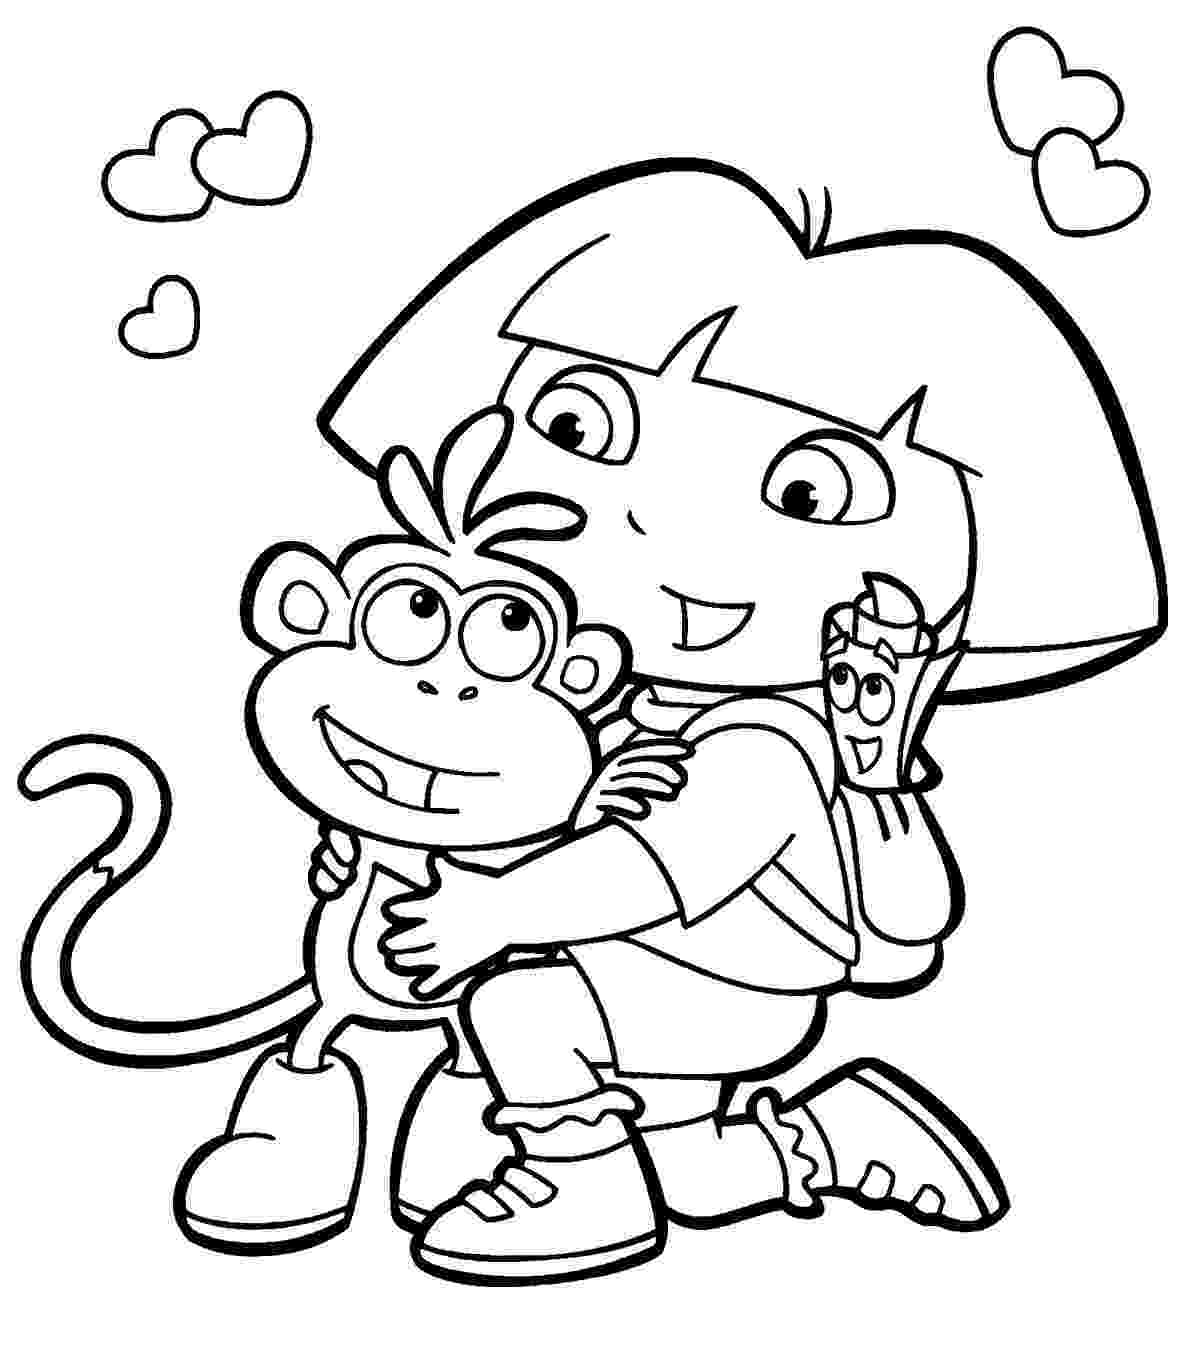 colouring pages dora dora coloring pages diego coloring pages dora colouring pages